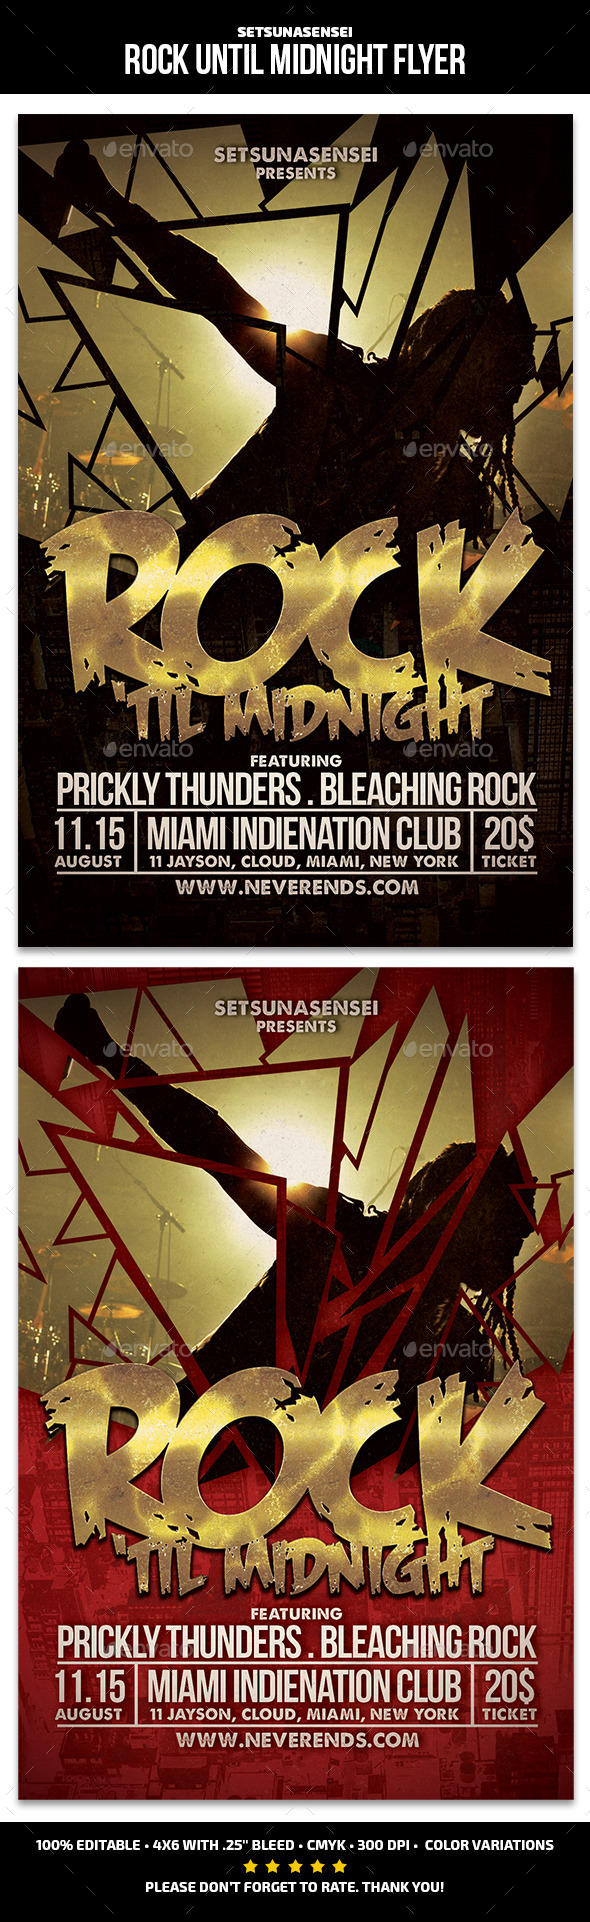 GraphicRiver Rock Until Midnight Flyer 11320076